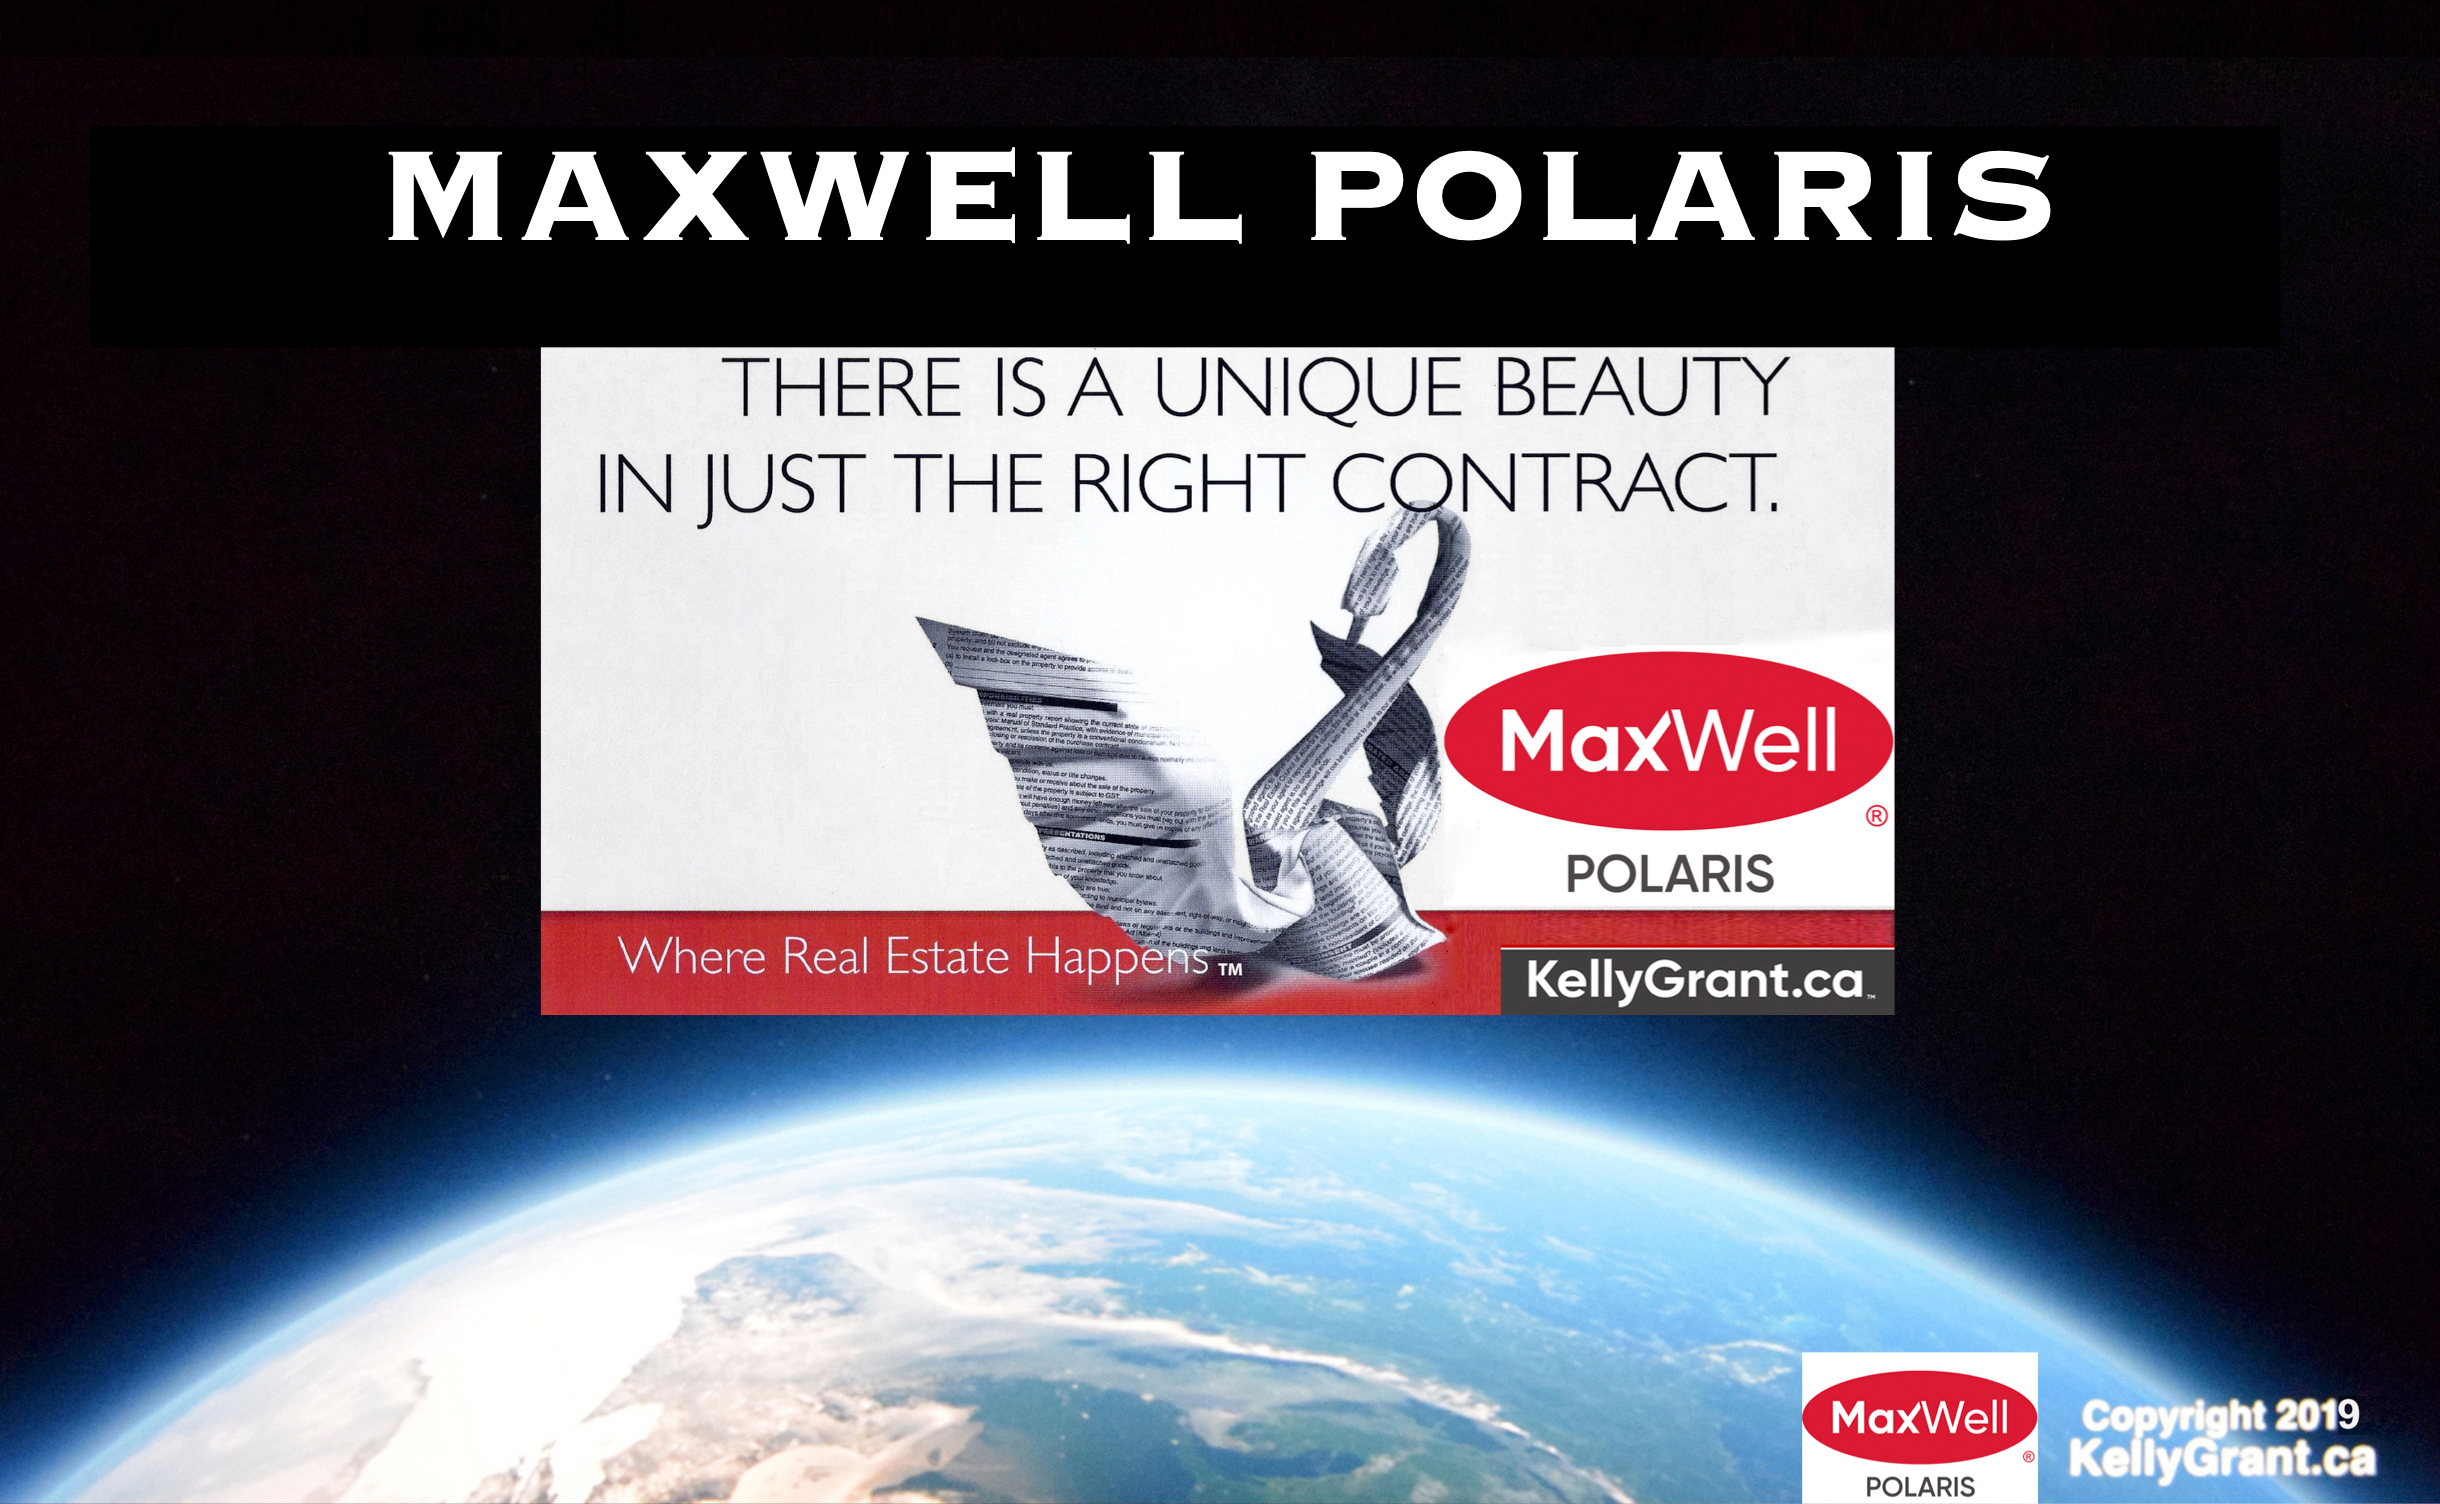 #56-KG MaxWell Just the Right Contract.jpg